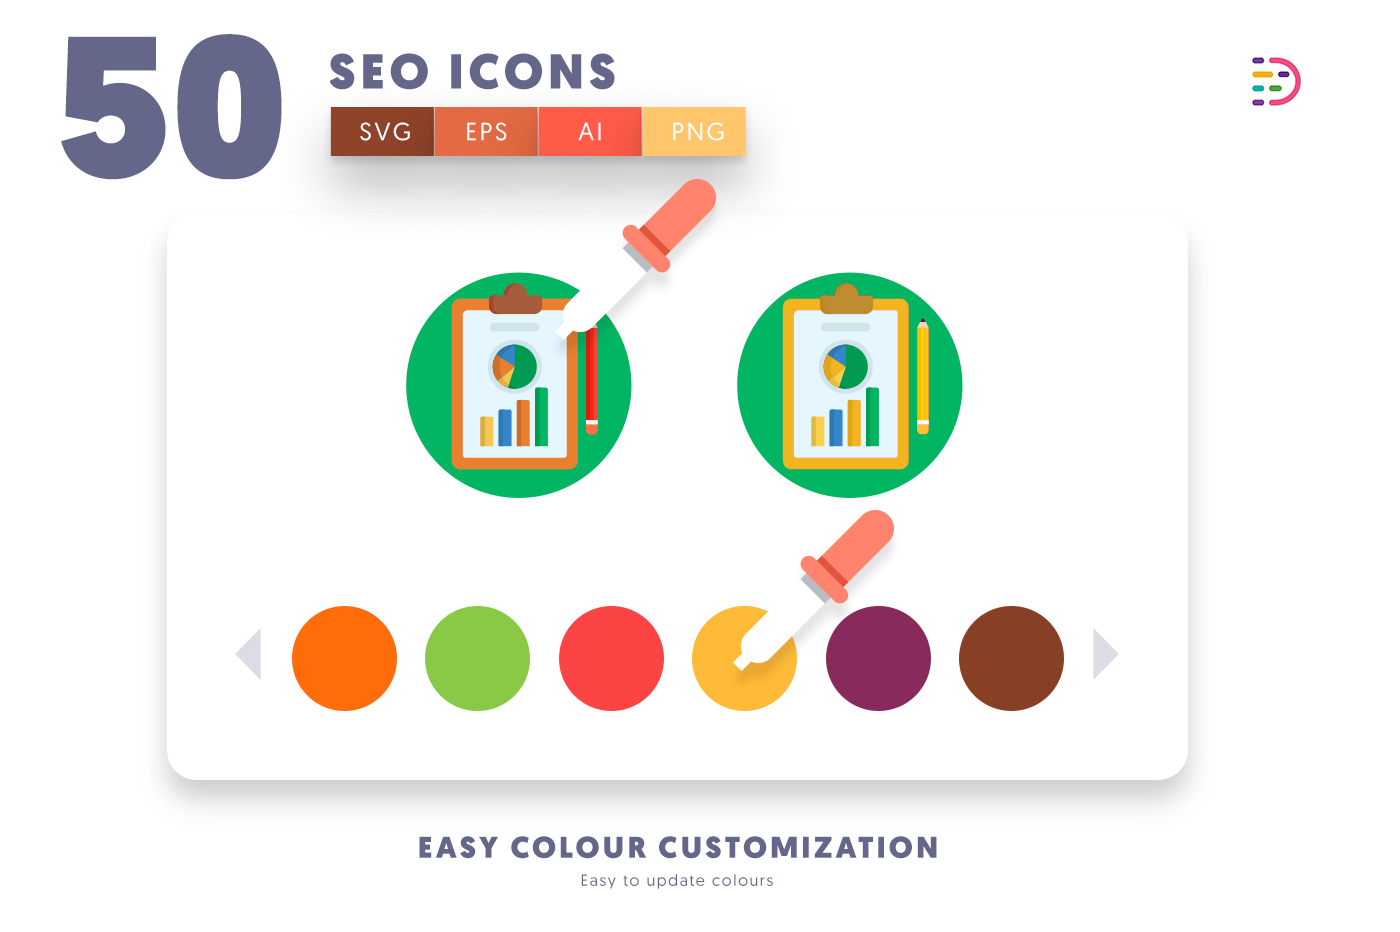 Customizable and vector 50 SEO Icons